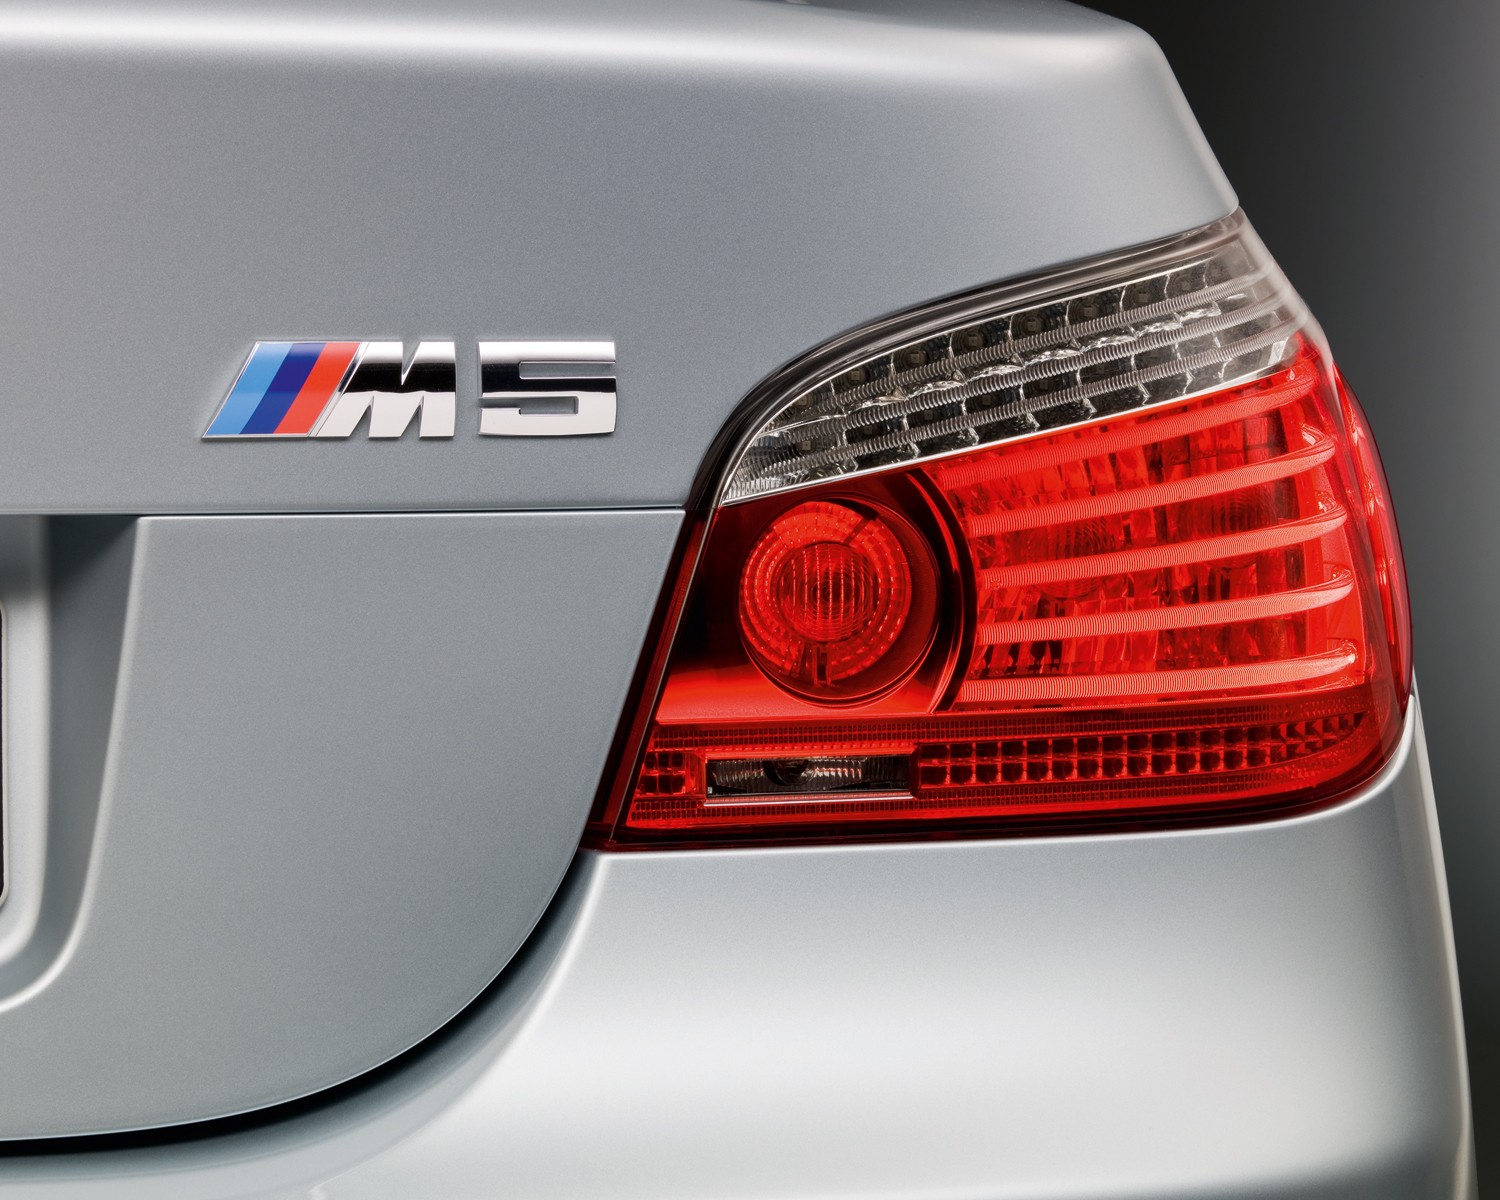 background - Bude návrat legendárnej M5 Touring?